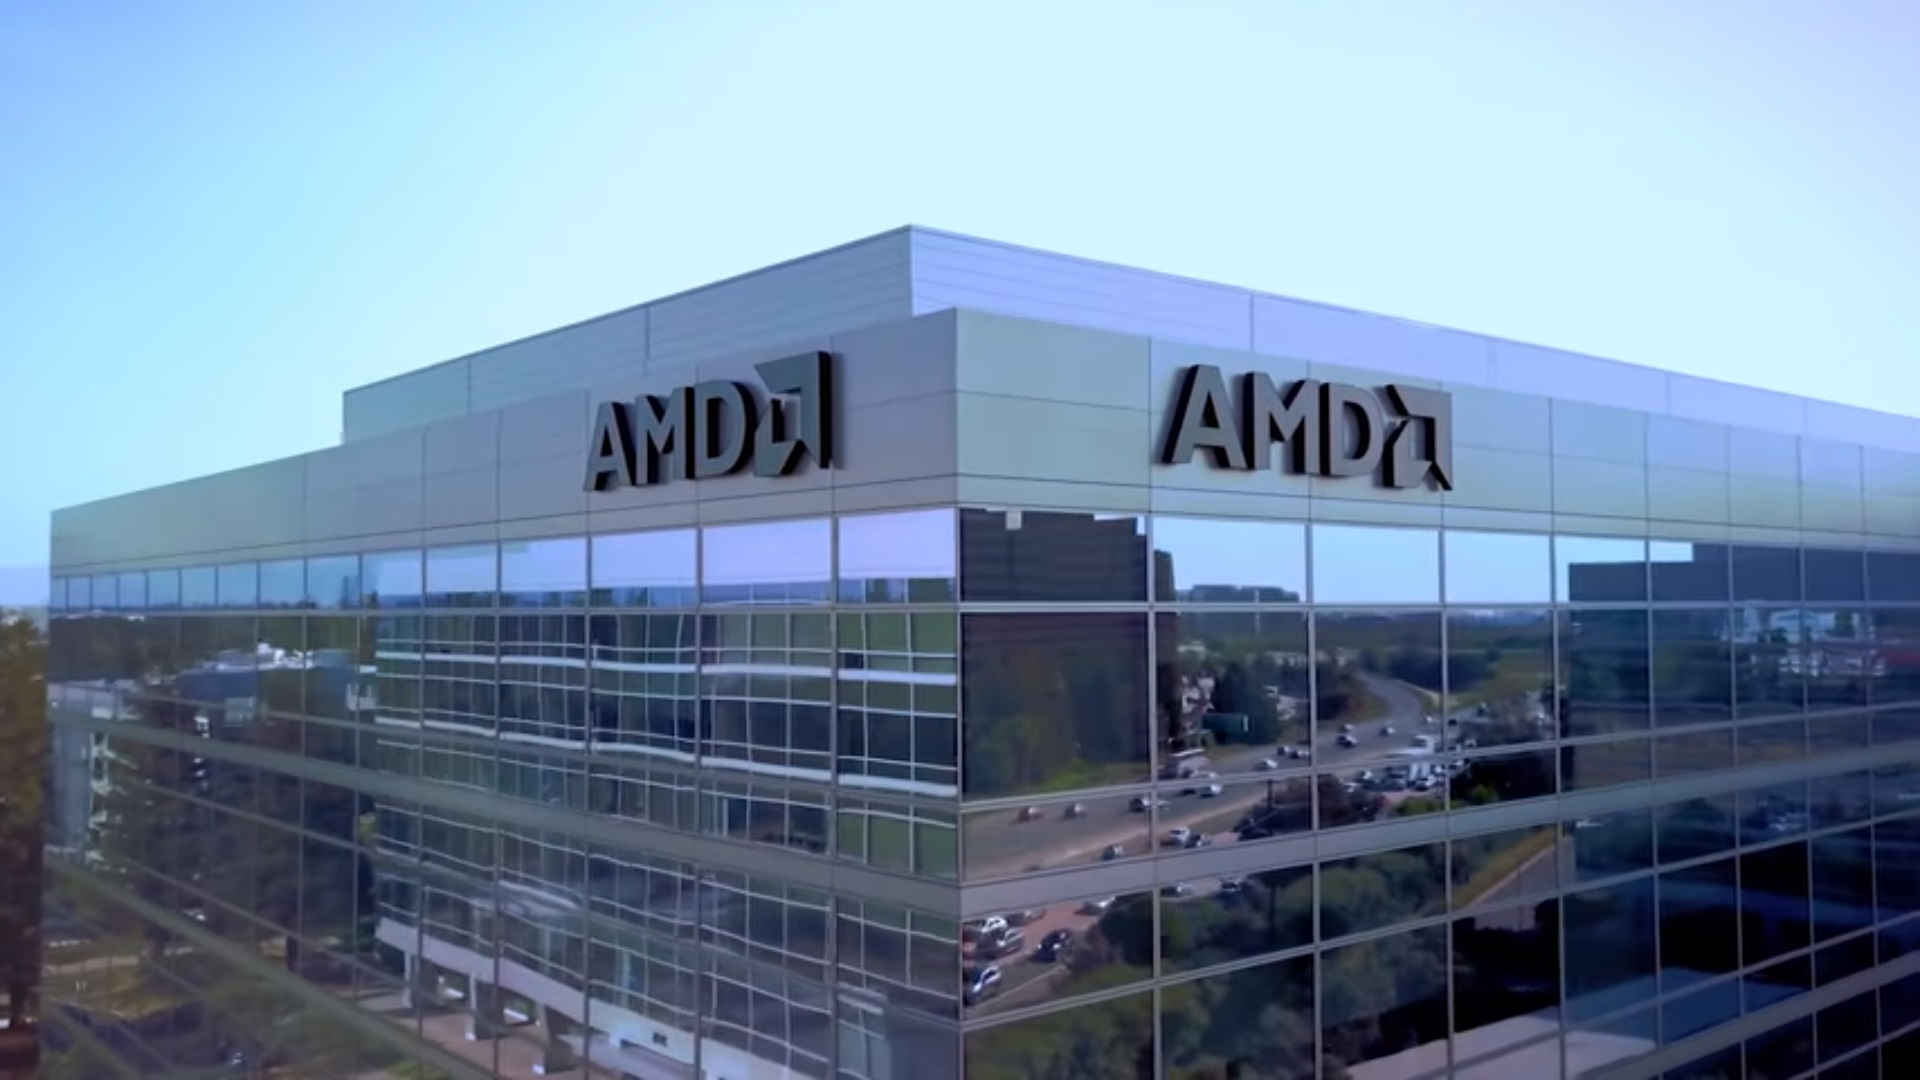 Amd Highlights Its Corporate Responsibility Initiatives Channel Post Mea